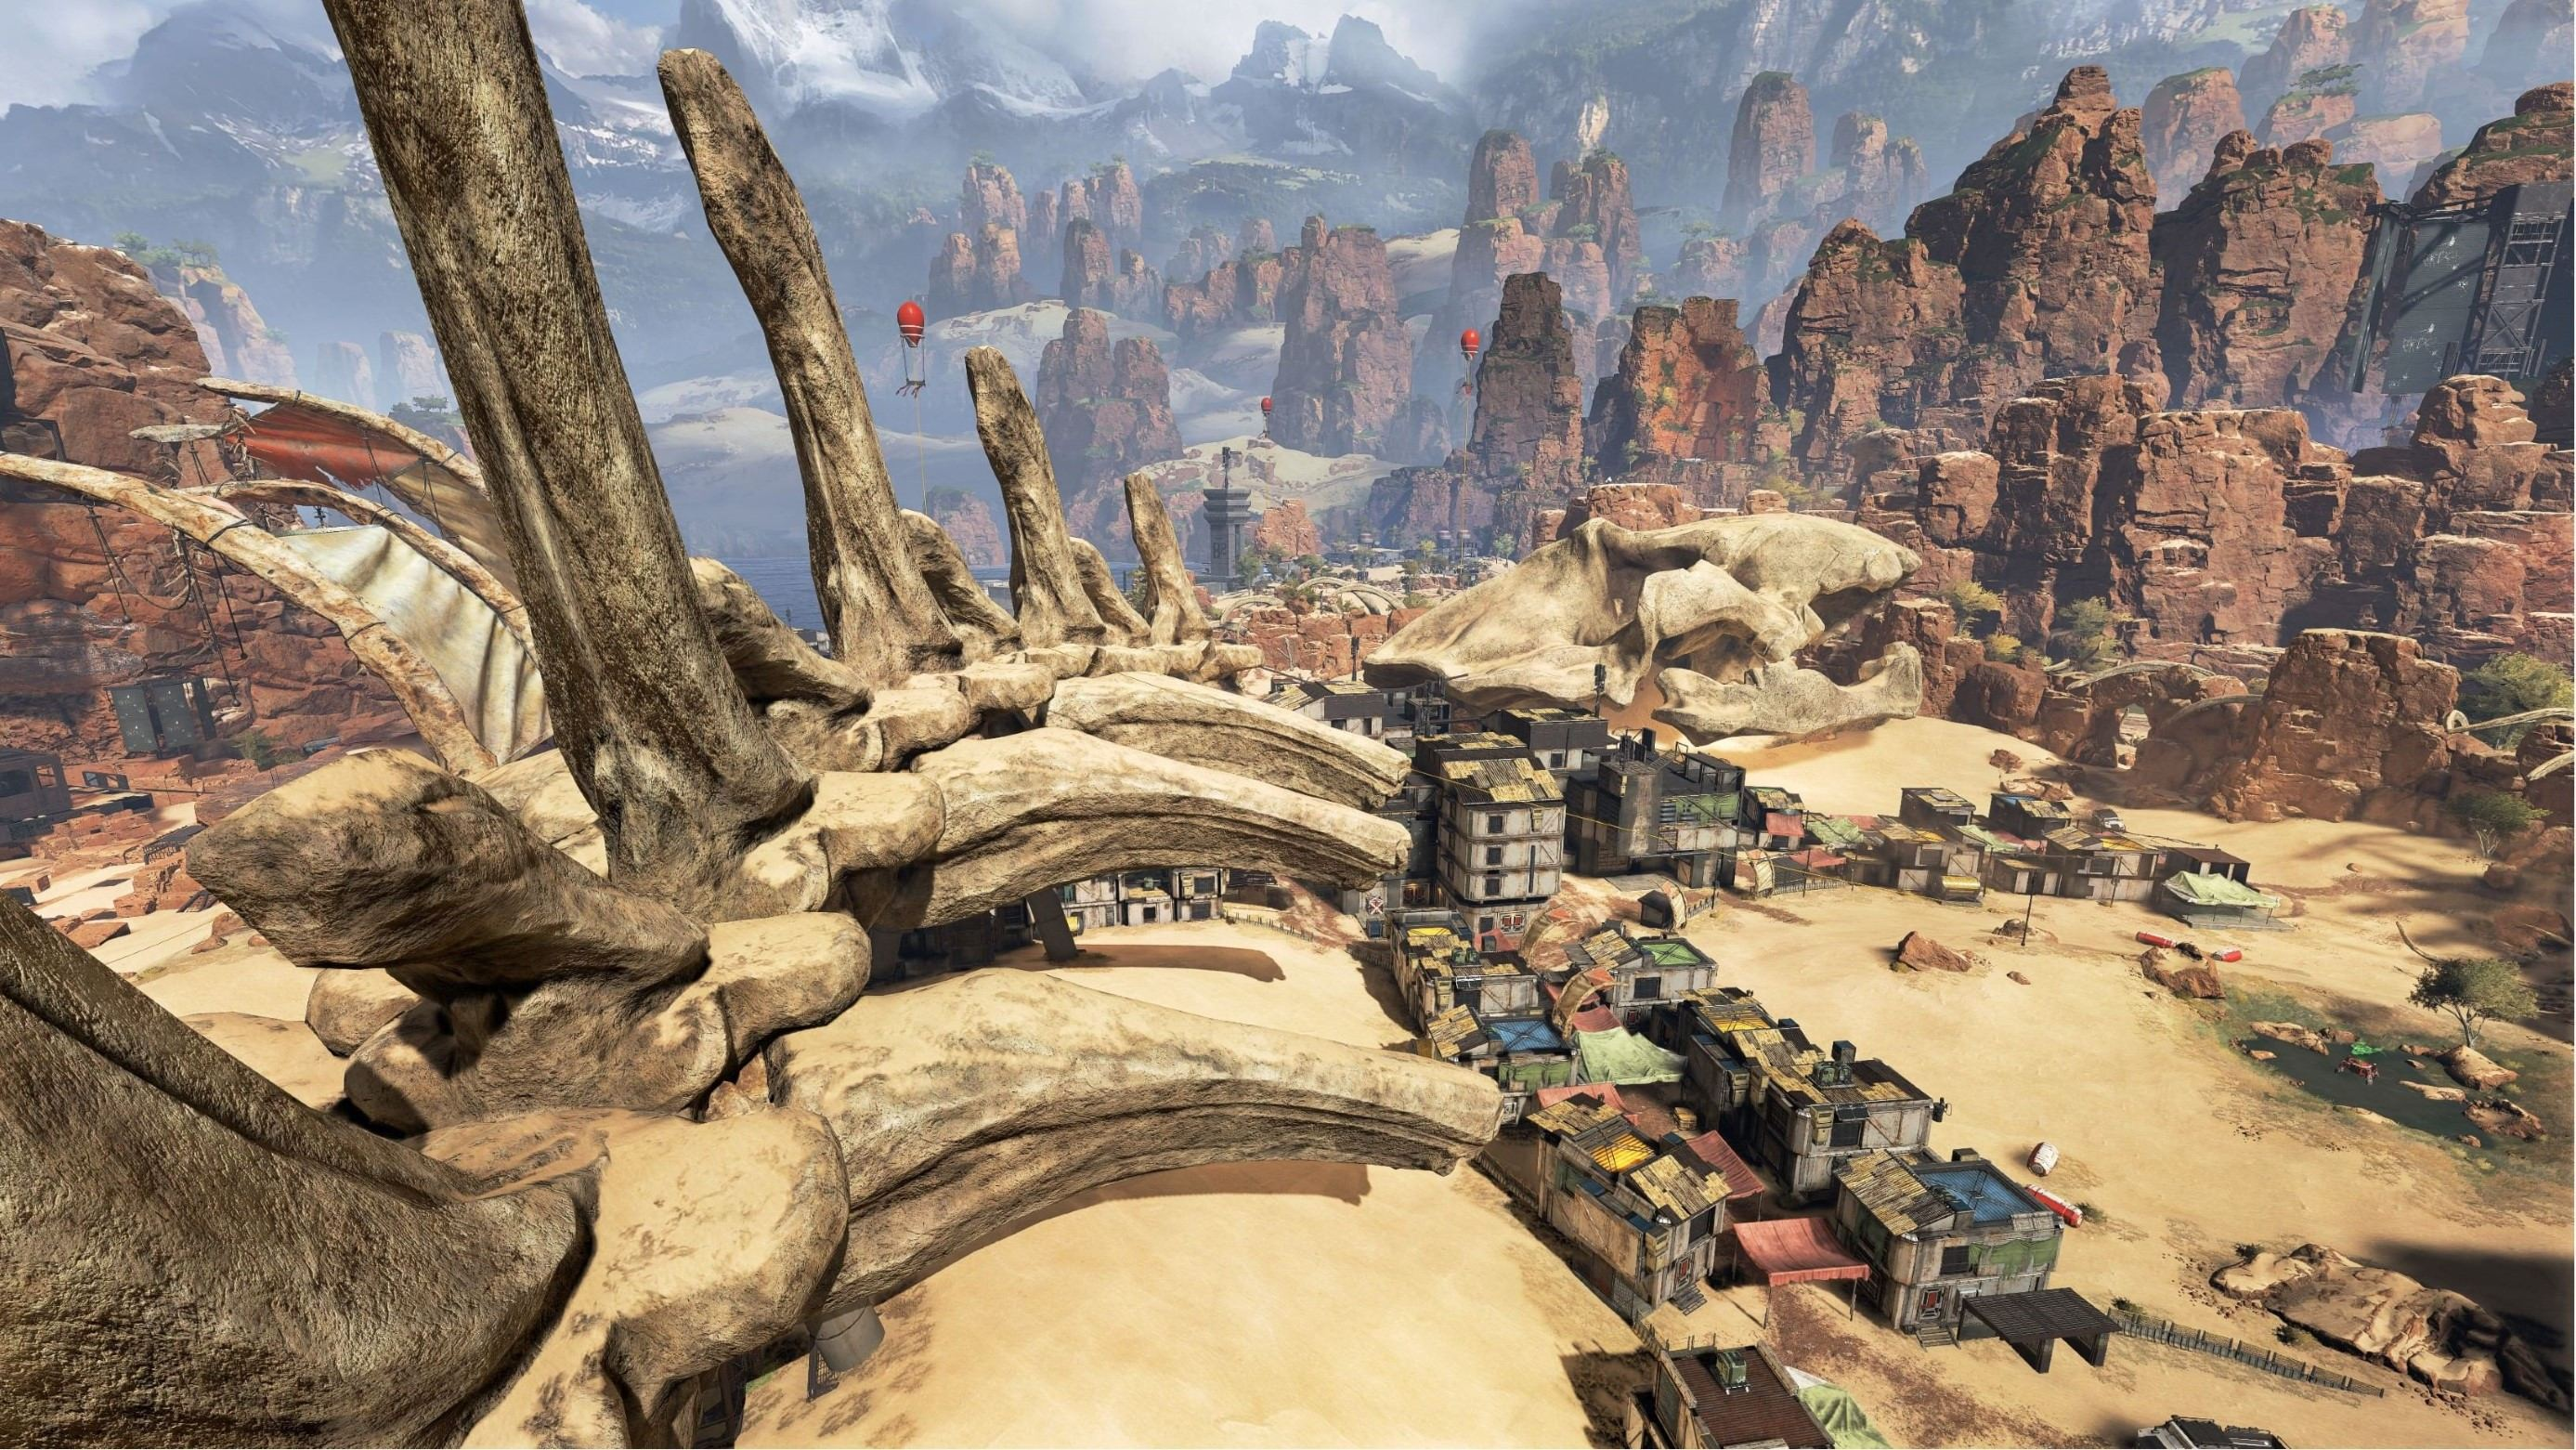 APEX_Legends_Screenshot_World_Skulltown_04_Clean